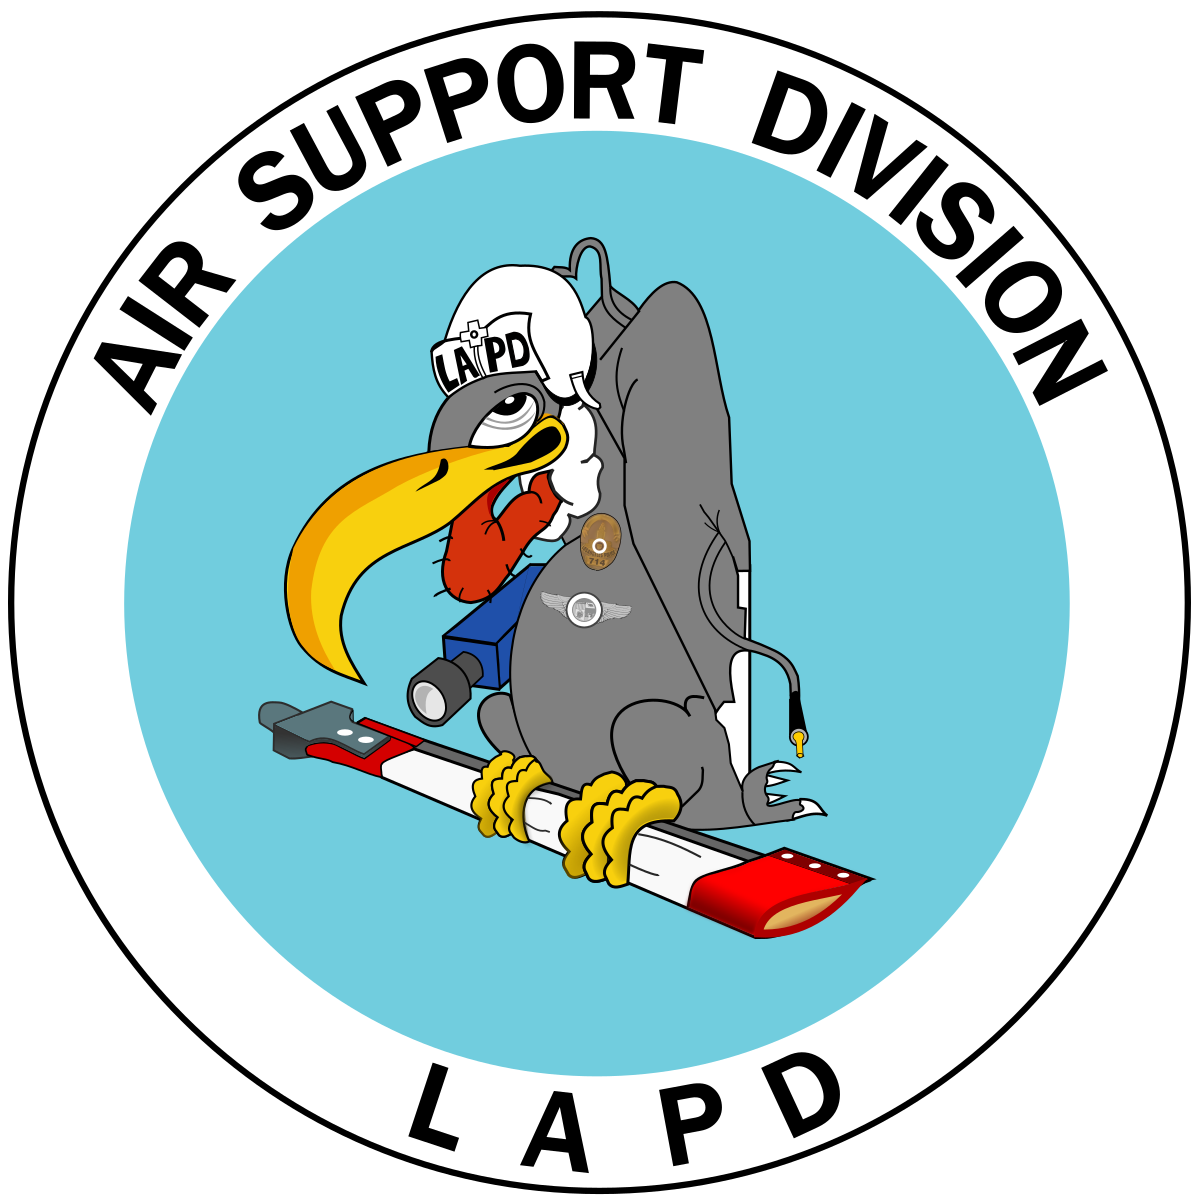 Pilot clipart airport staff. Lapd air support division